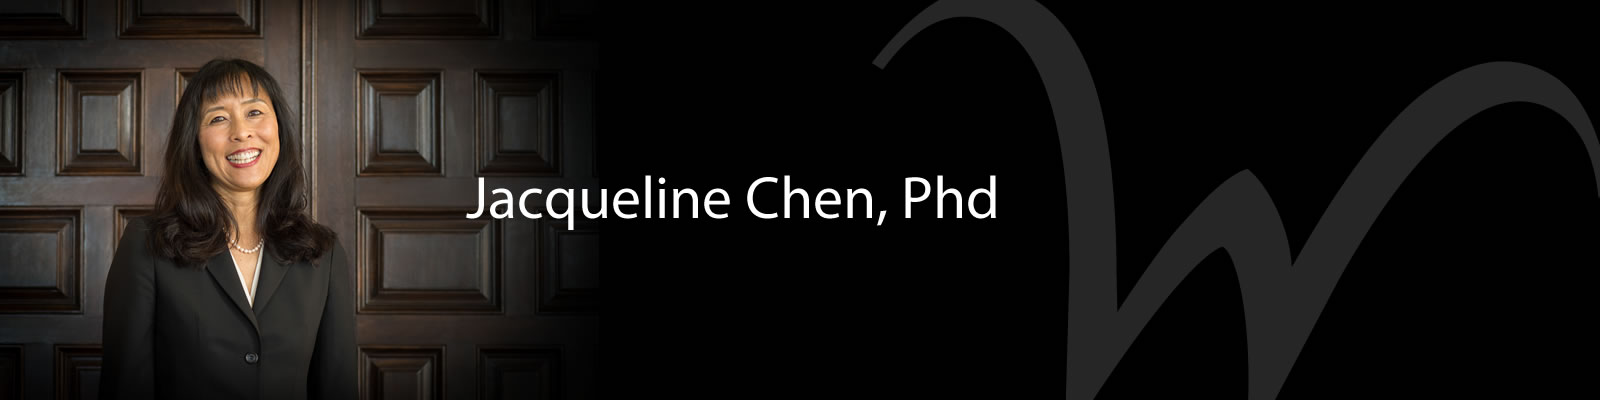 Photo of Jacqueline Chen, PhD